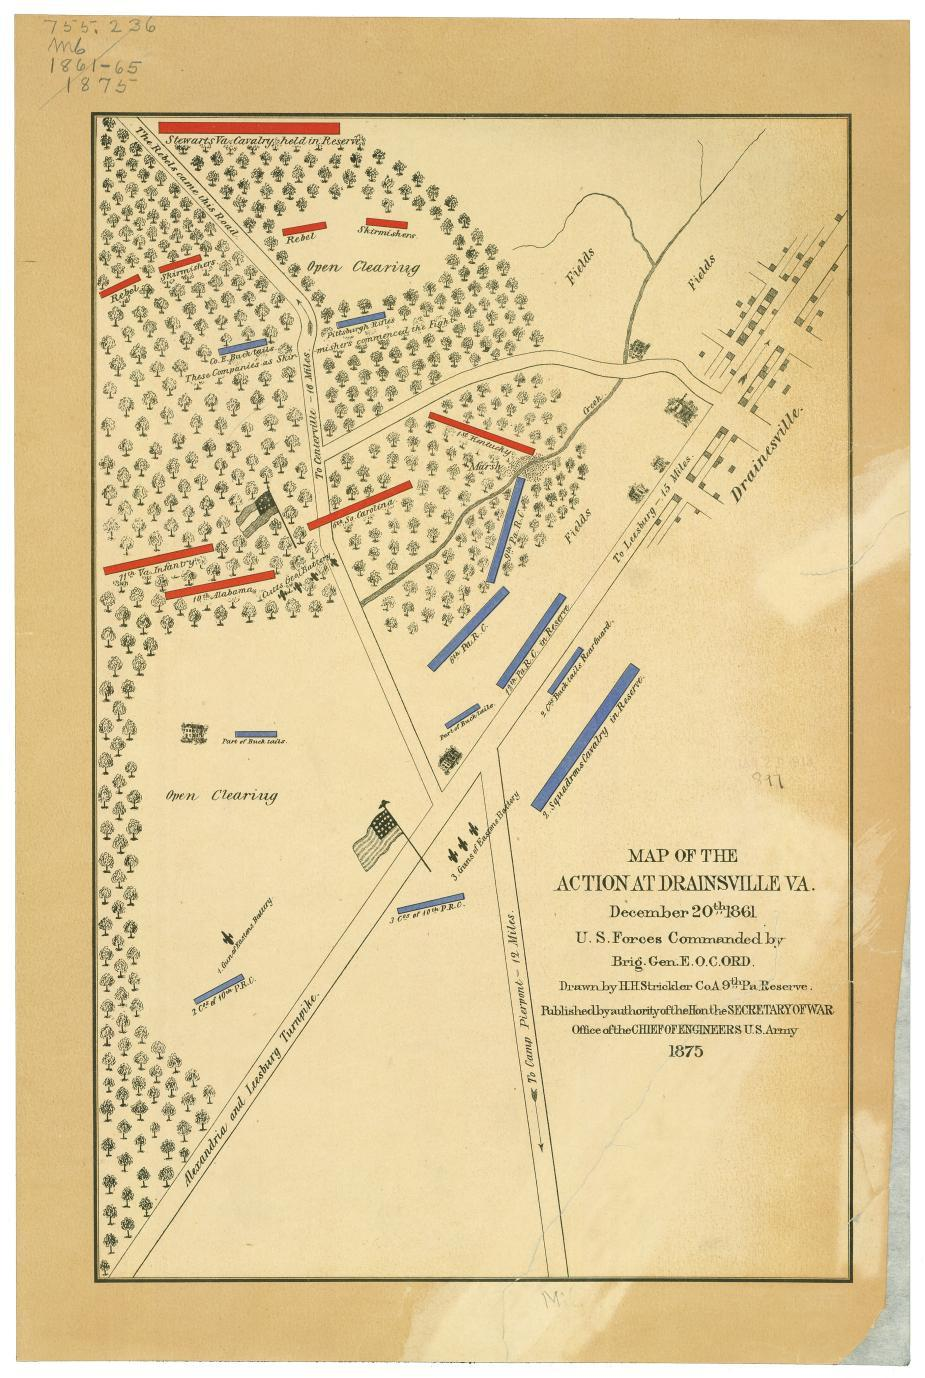 Map of the action at Drainsville, Va., December 20th 1861